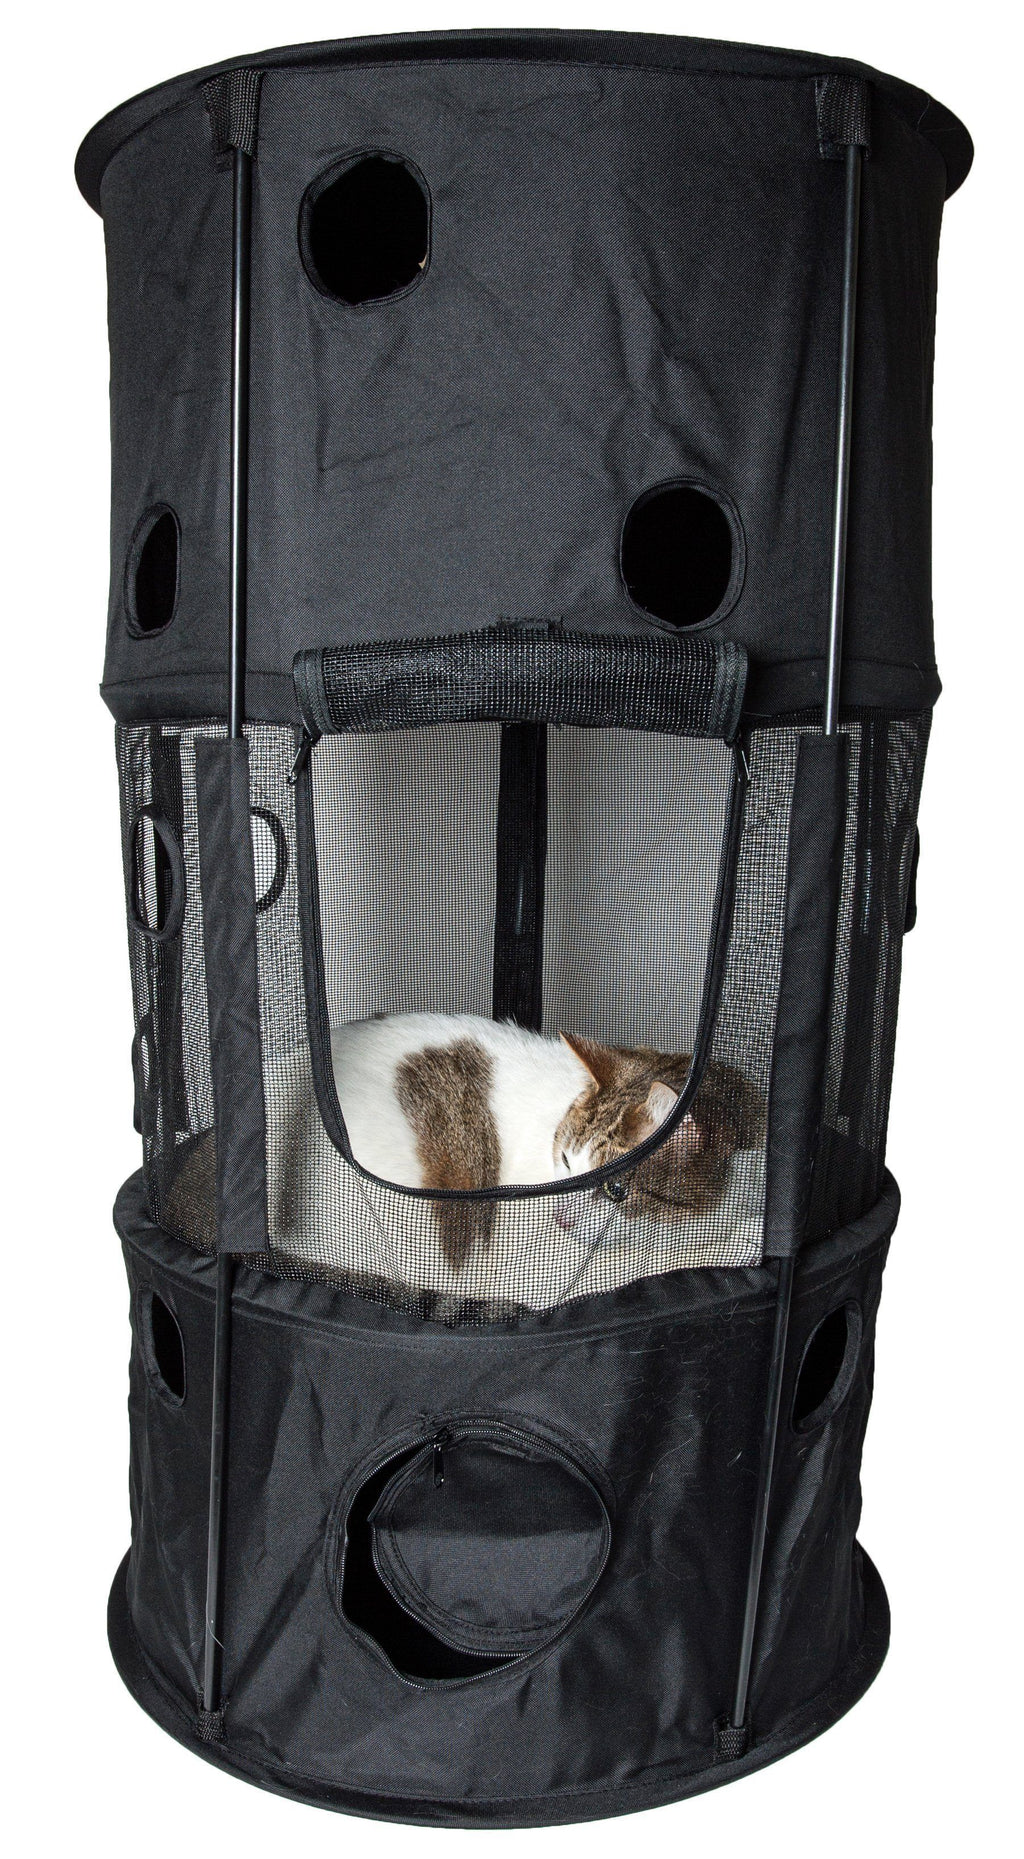 Pet Life ® 'Climber-Tree' Play-Active Travel Collapsible Lightweight Kitty Cat Tree Hou...